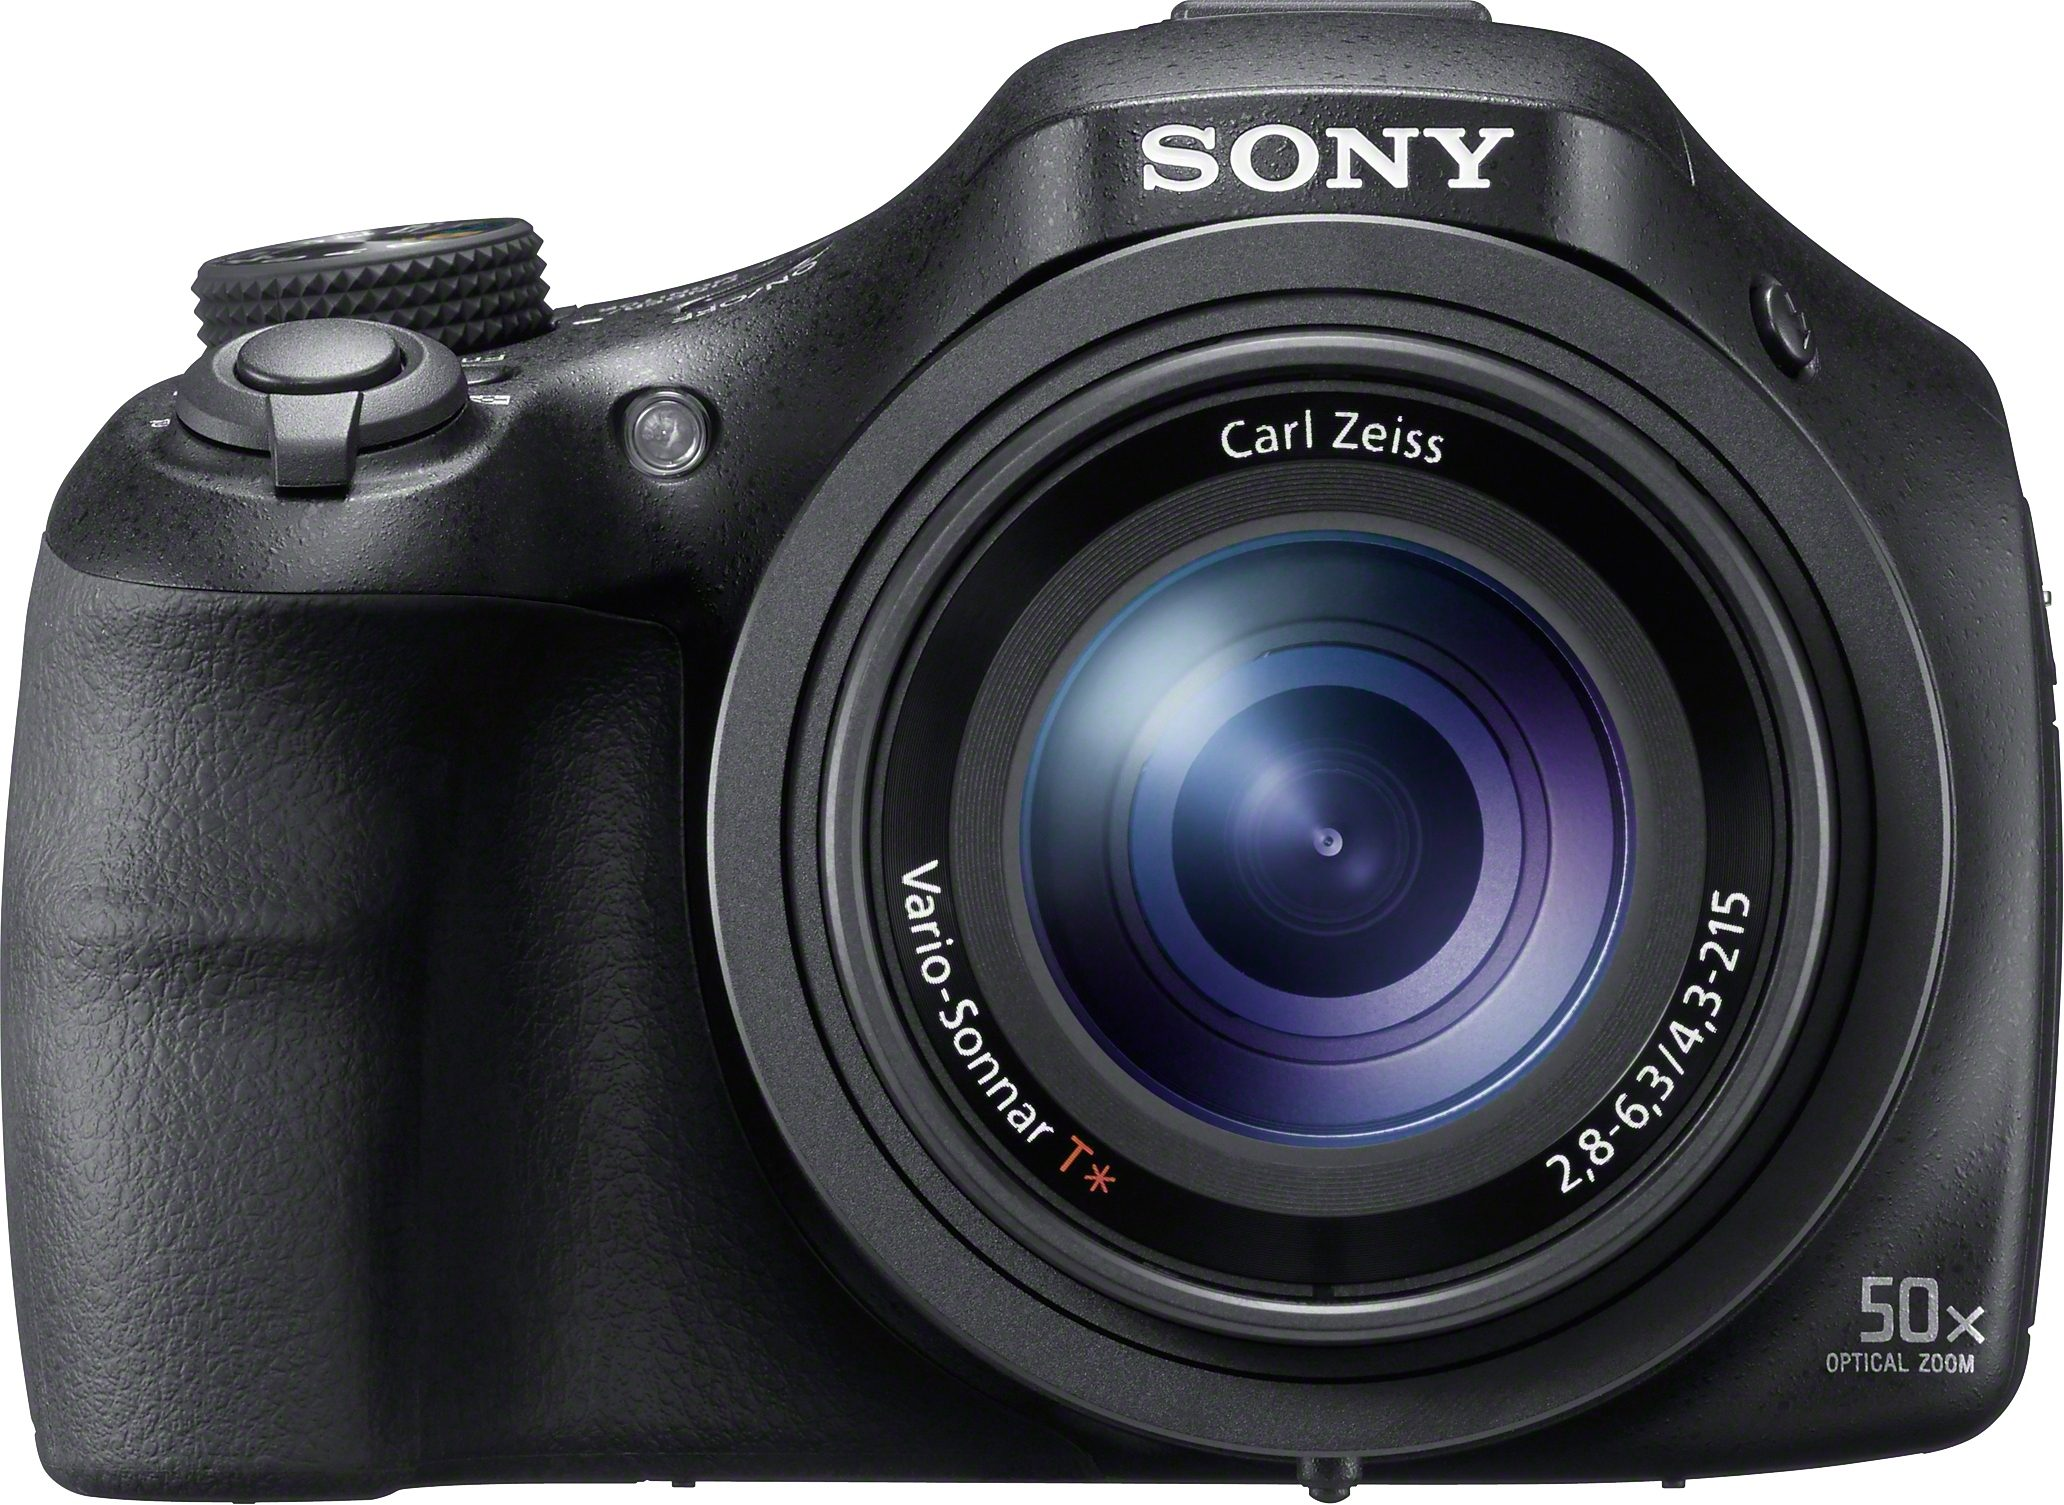 Sony Cyber-Shot DSC-HX400V Bridge Kamera, 20,4 Megapixel, 50x opt. Zoom, 7,6 cm (3 Zoll) Display